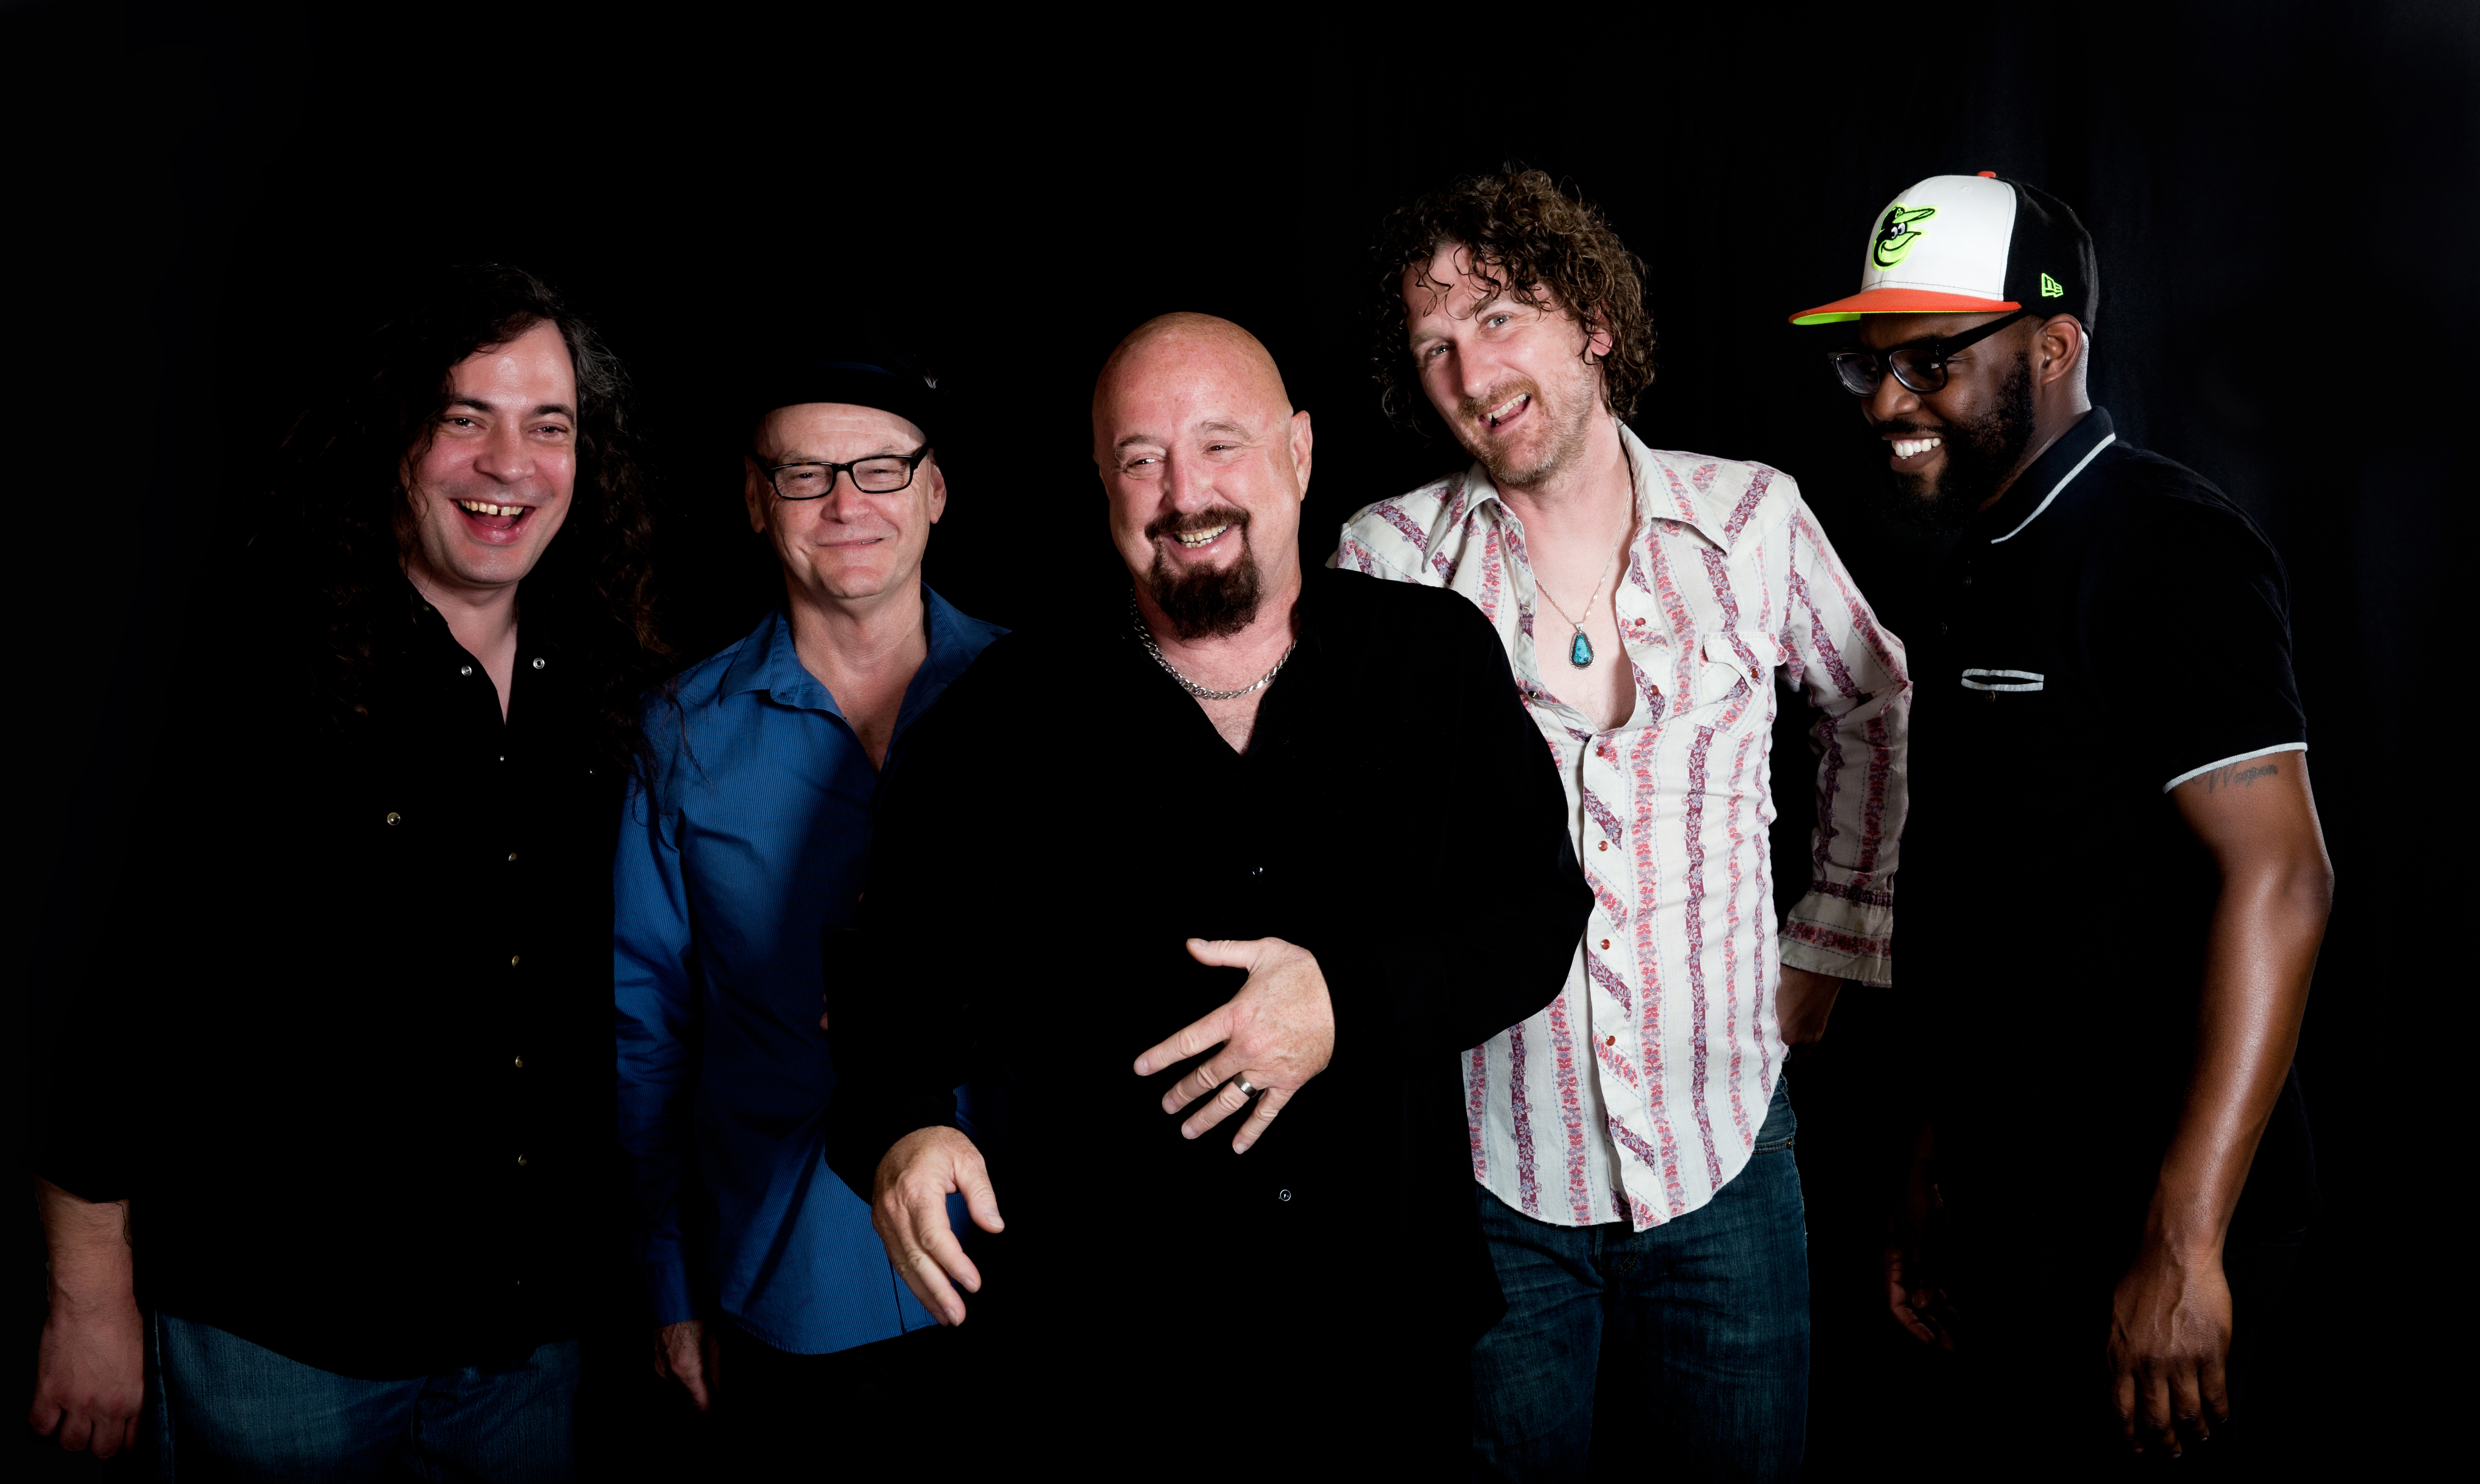 HQ The Fabulous Thunderbirds Wallpapers   File 4945.39Kb